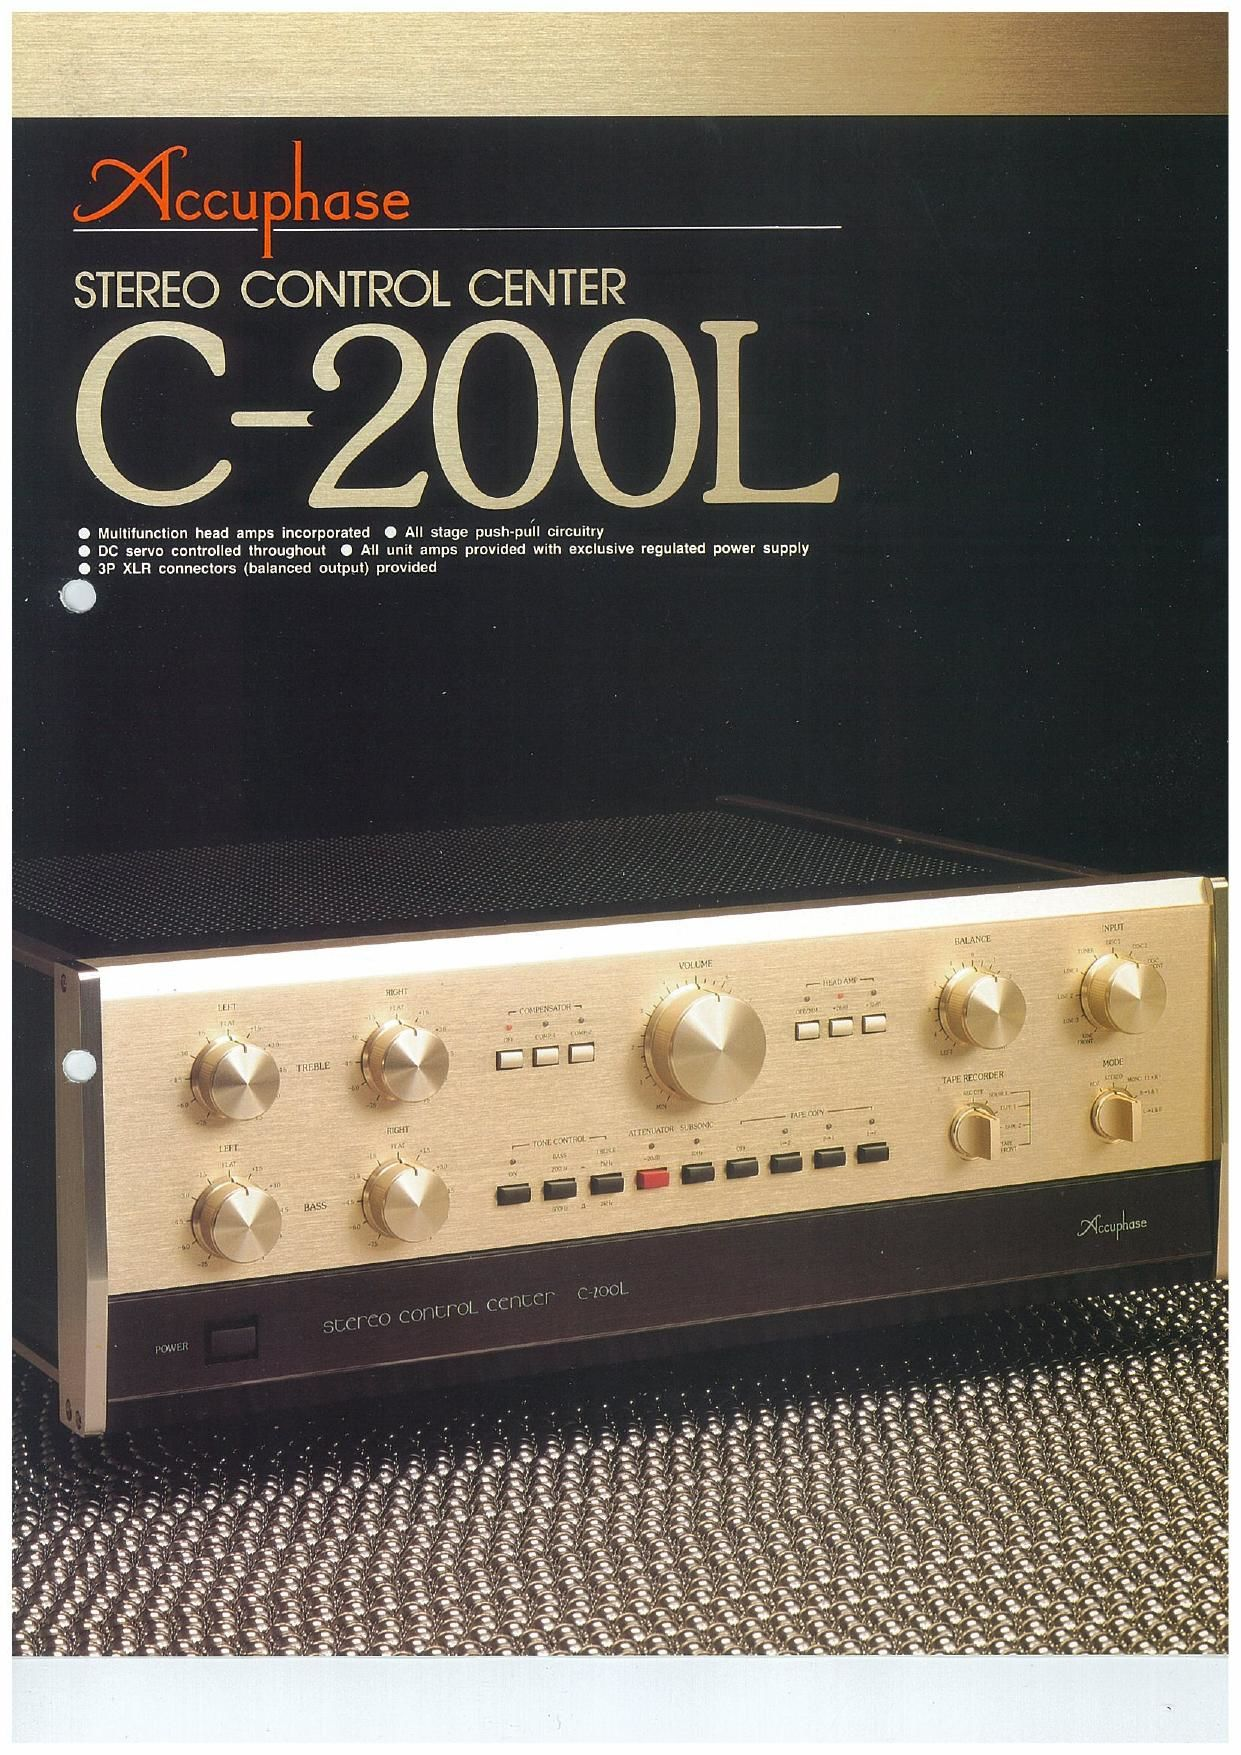 Accuphase C 200 L Brochure